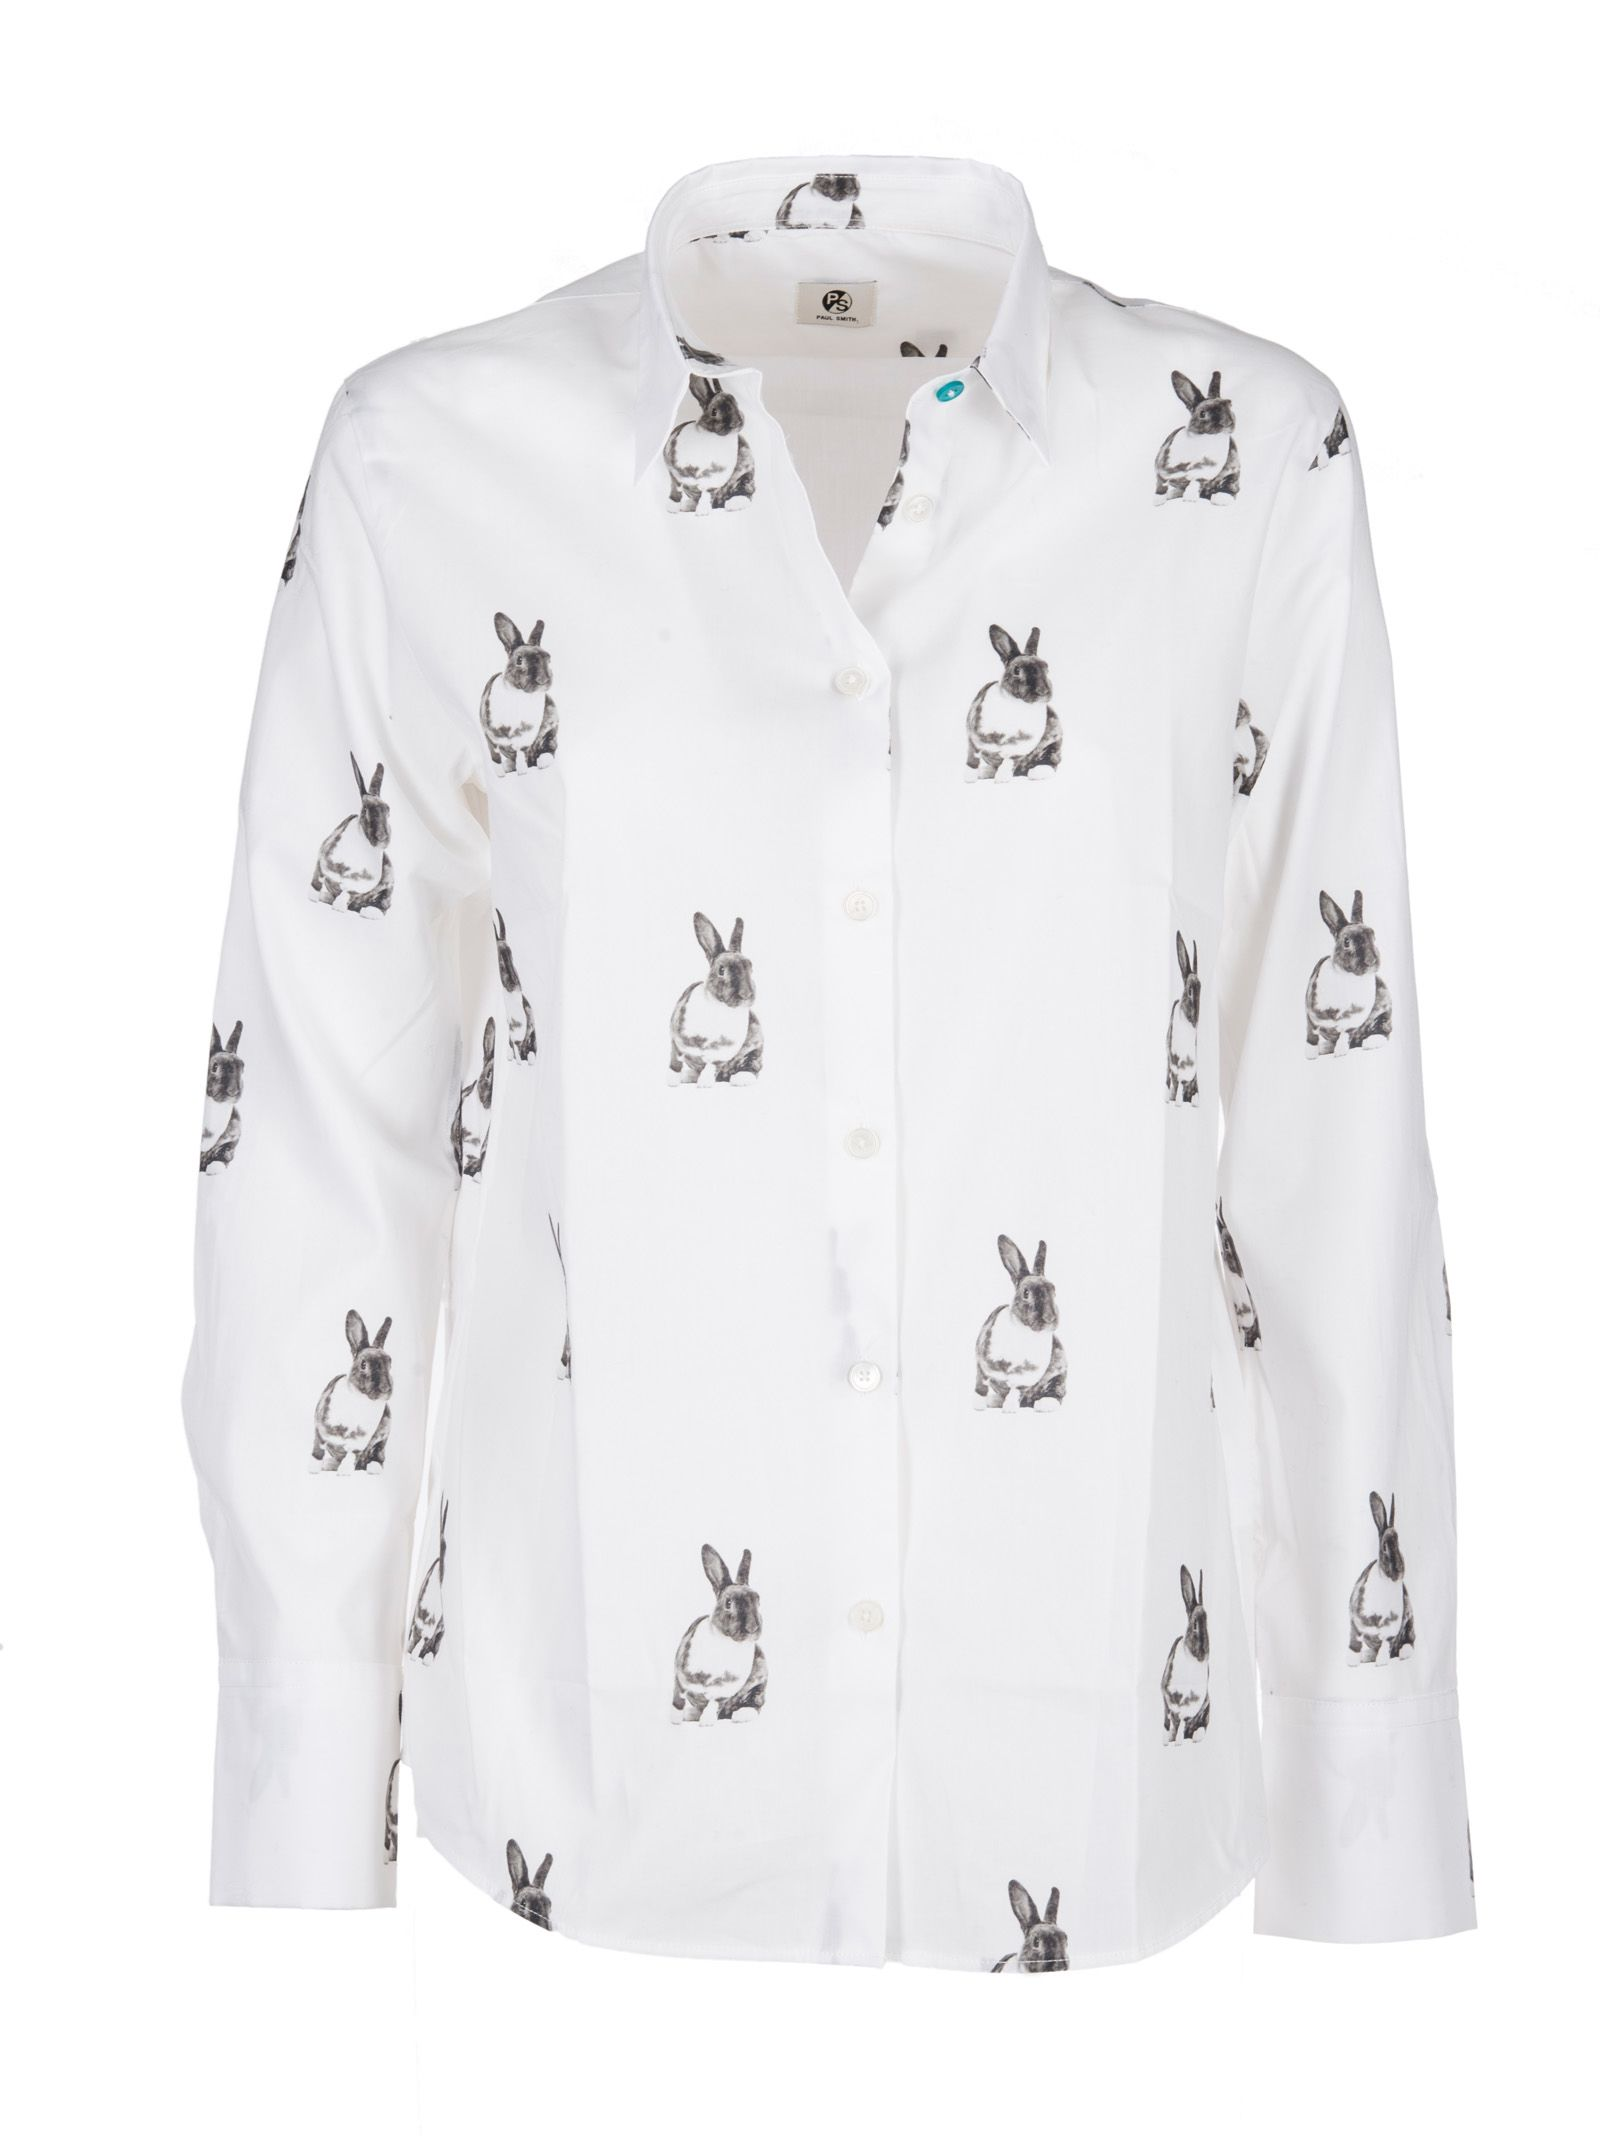 Paul Smith Rabbit Print Shirt